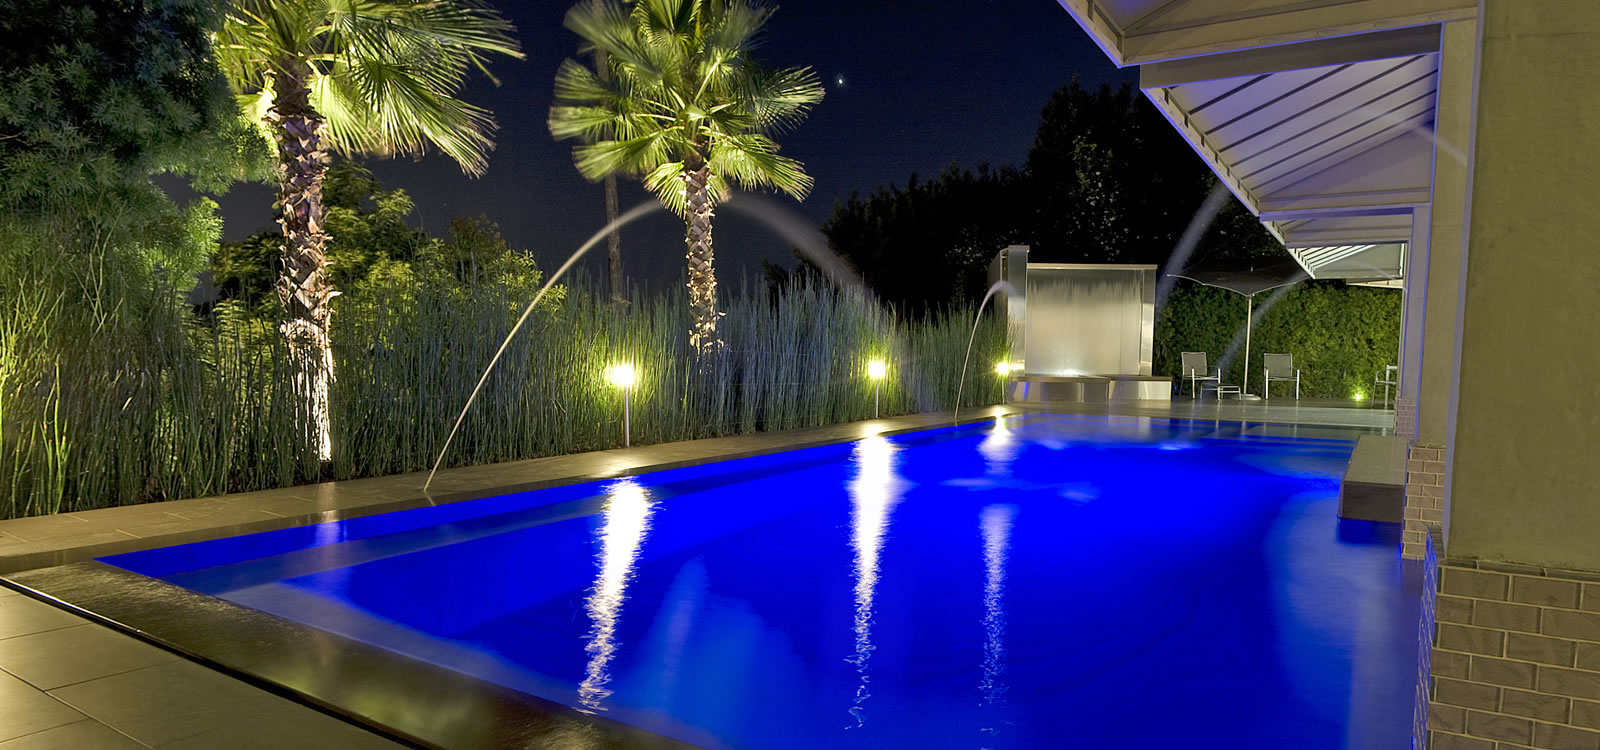 John crystal pools los angeles southern california pool for Pool design los angeles